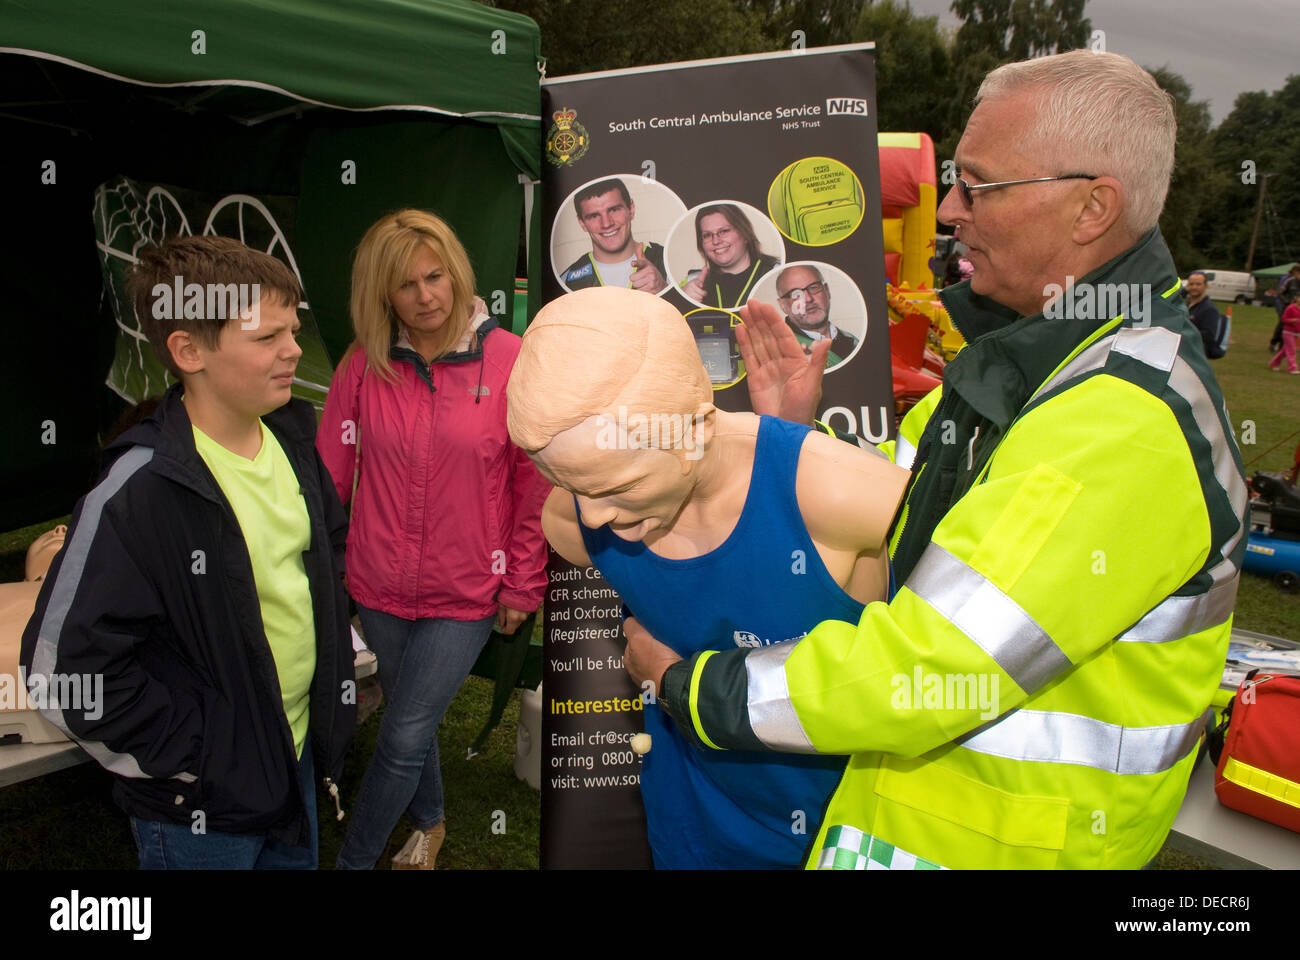 South Central Ambulance personnel giving talk and demo on life saving techniques at an emergency services open day - Stock Image